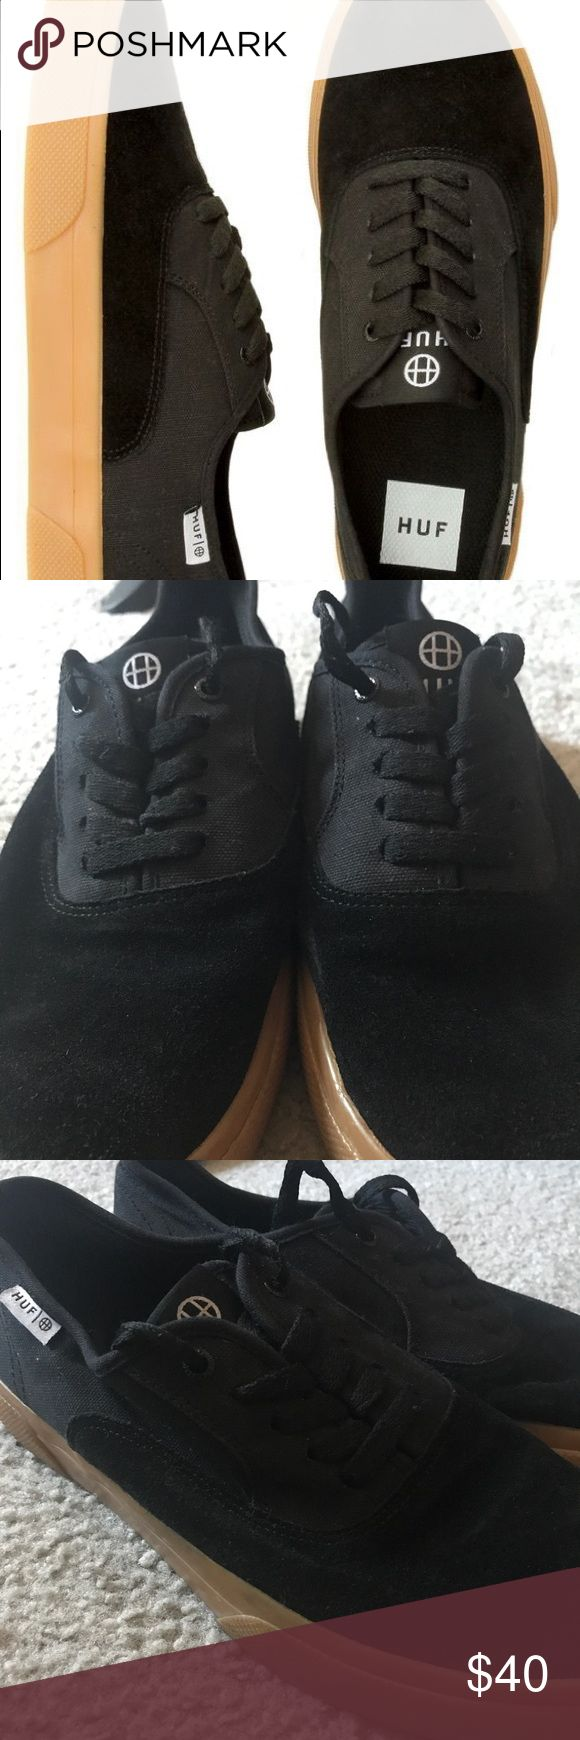 HUF Mateo black/gum shoes Size 8 in men and 9.5 in women. Worn but in good condition HUF Shoes Sneakers